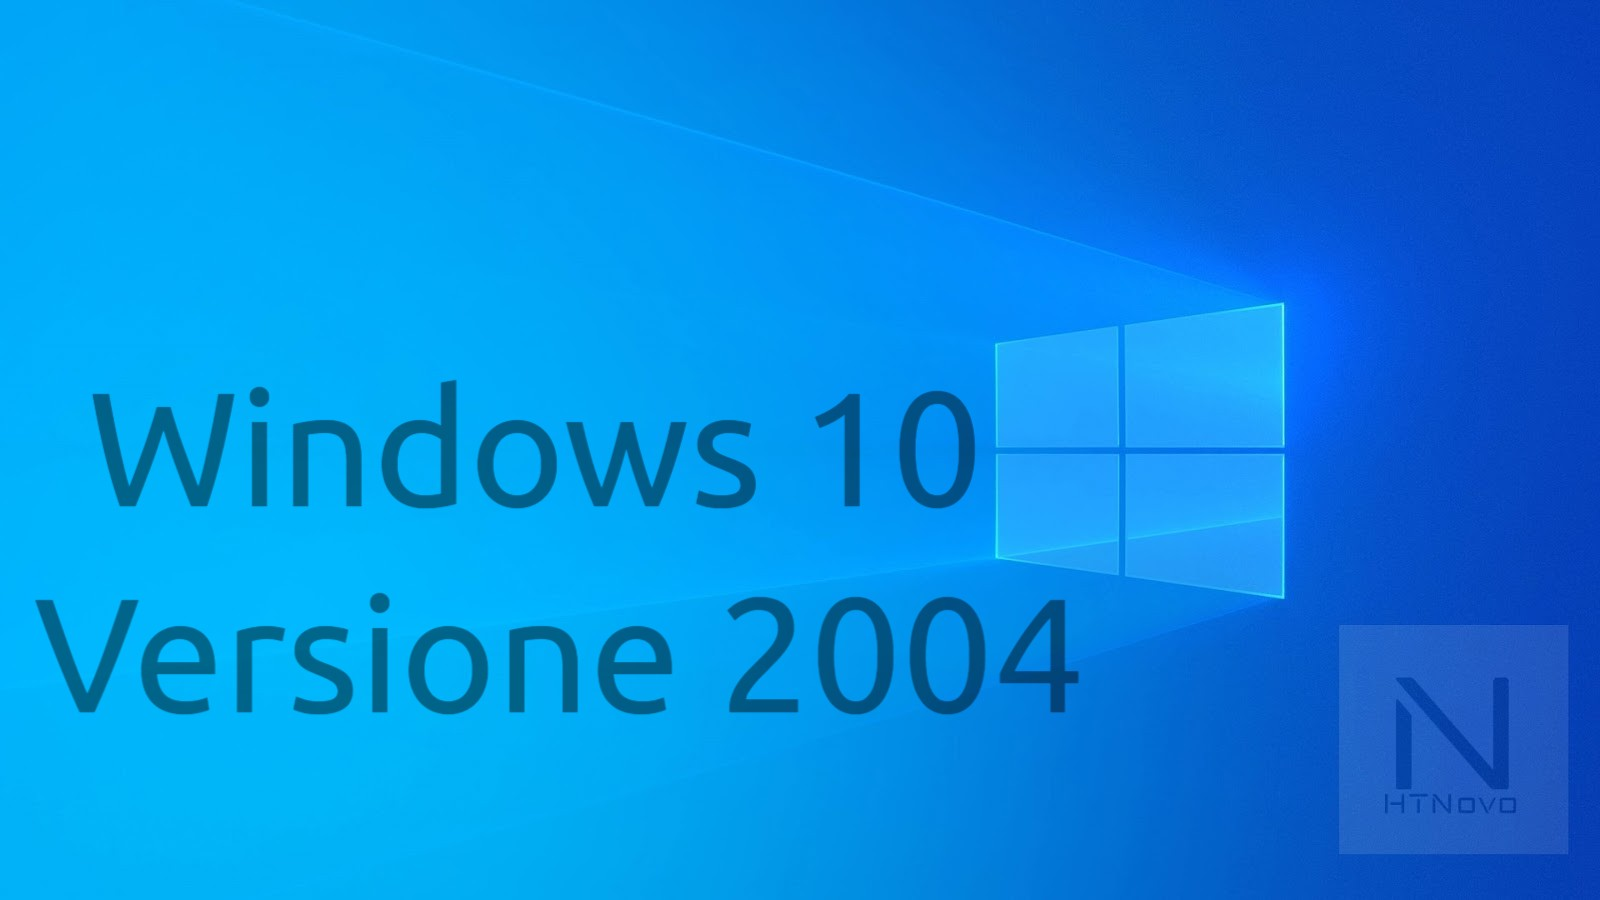 Windows 10 Versione 2004 Insider Preview - Build 19041.84